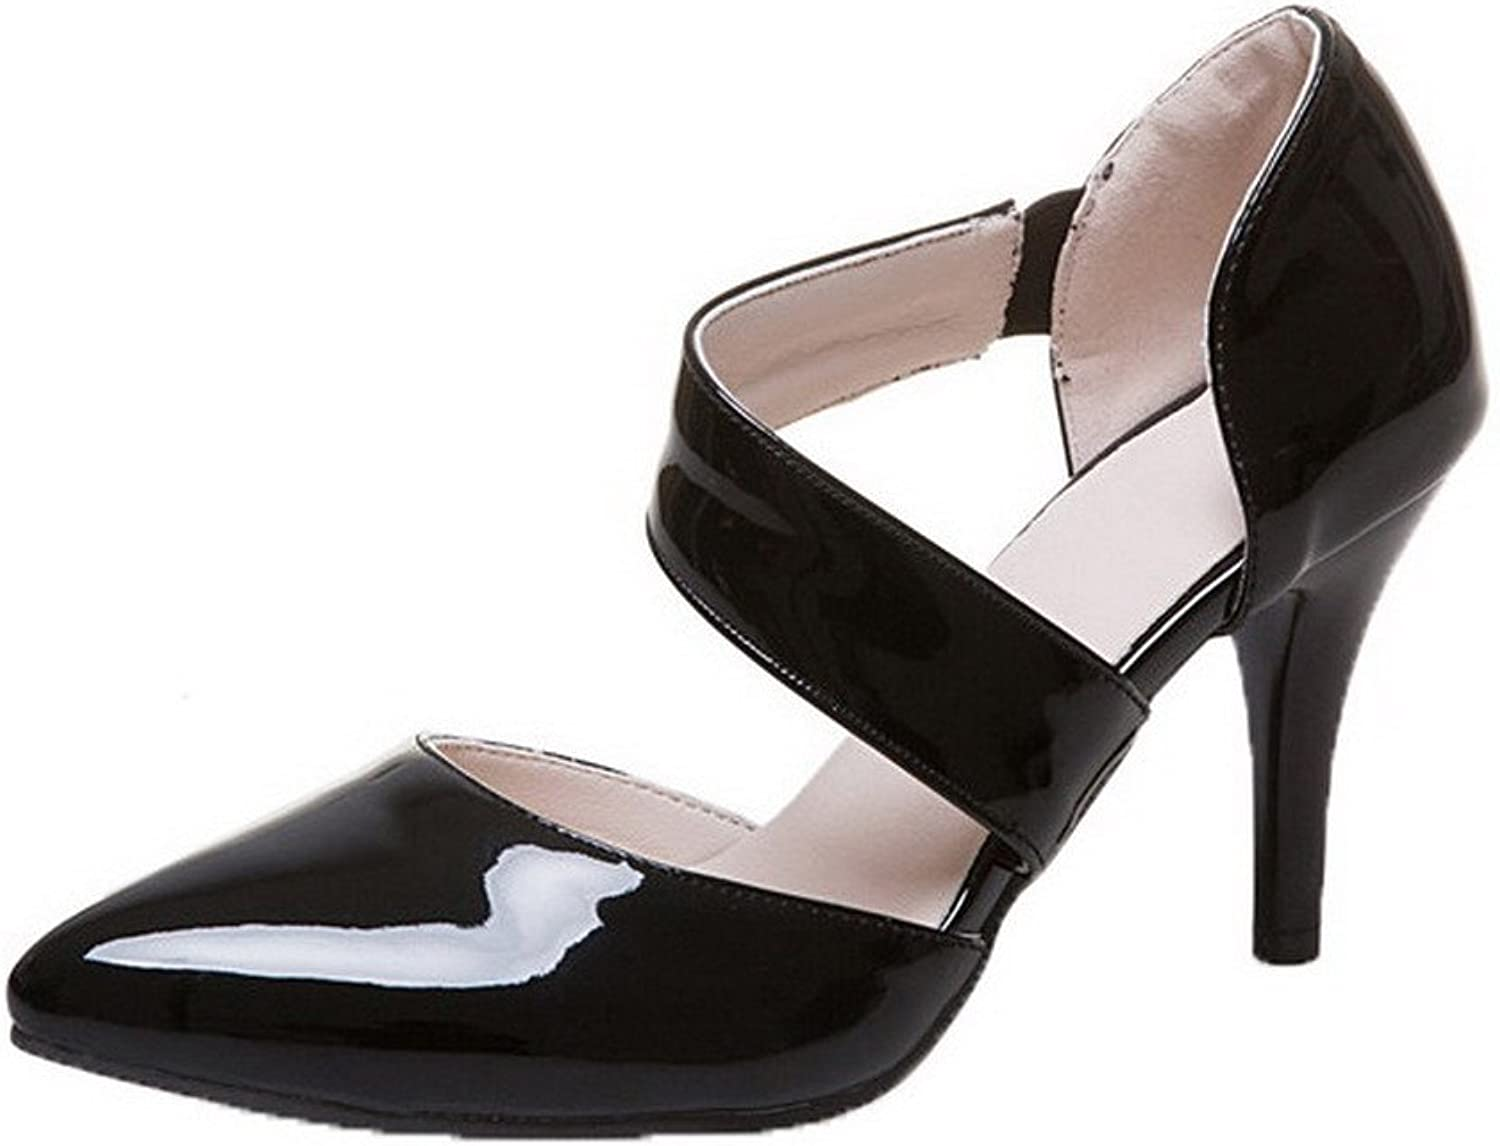 WeenFashion Women's High-Heels Patent Leather Solid Elastic Closed-Toe Sandals